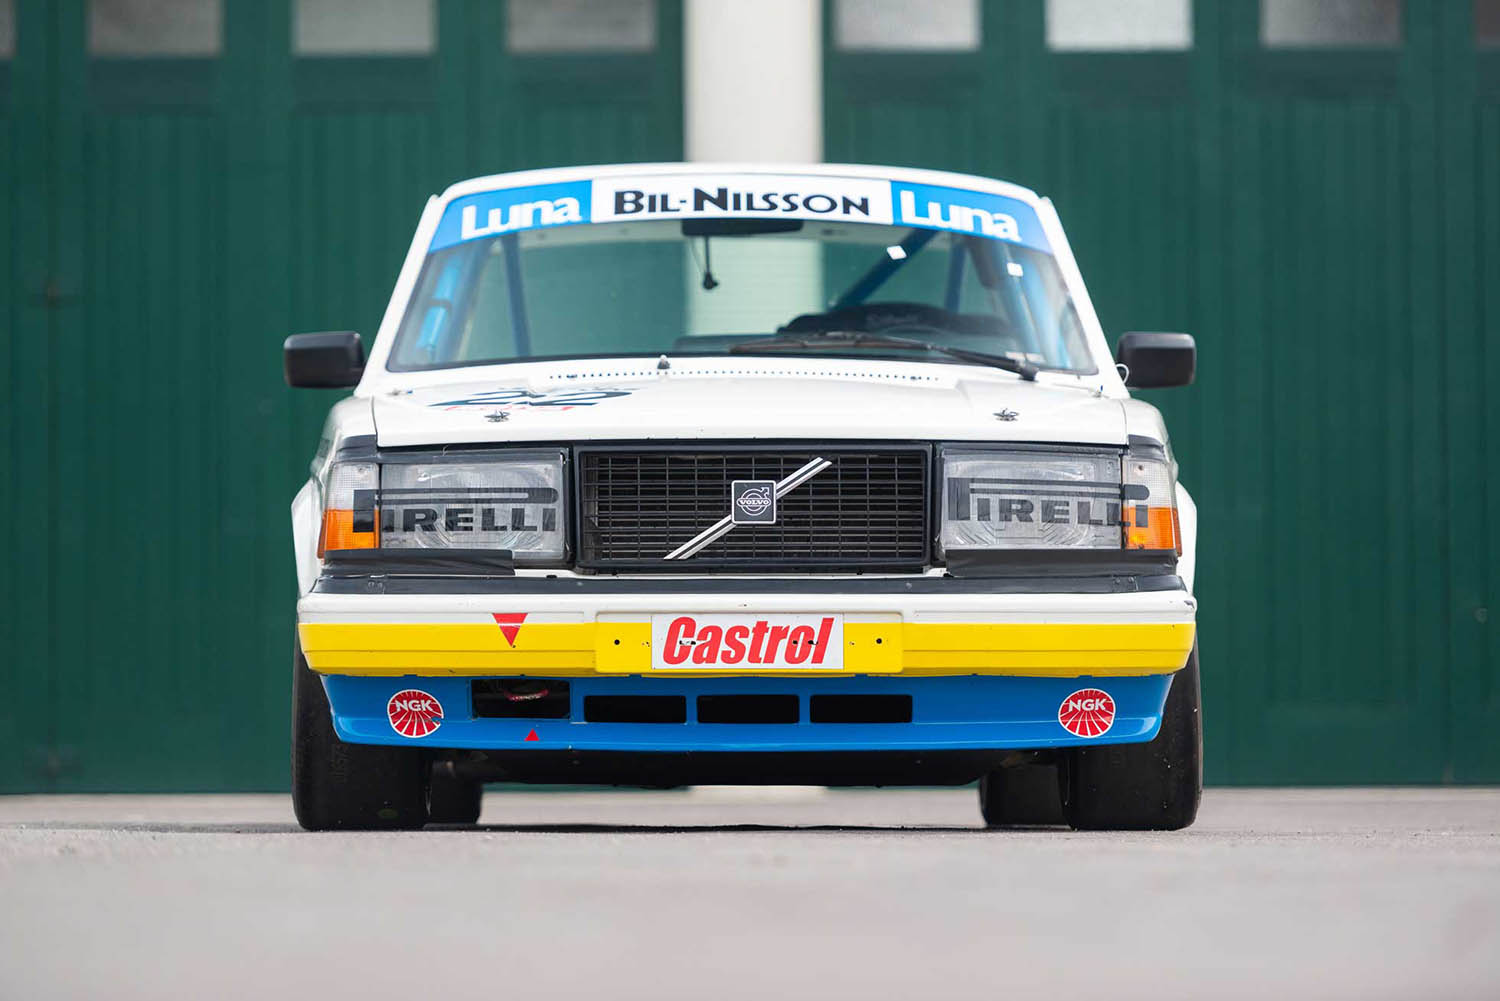 5d2da73d2be6ba4389e1a439_insert1-for-sale-1984-volvo-240-turbo-group-abicester-heritage-oxfordshire-uk-sports-purpose-porsche-specialists.jpg